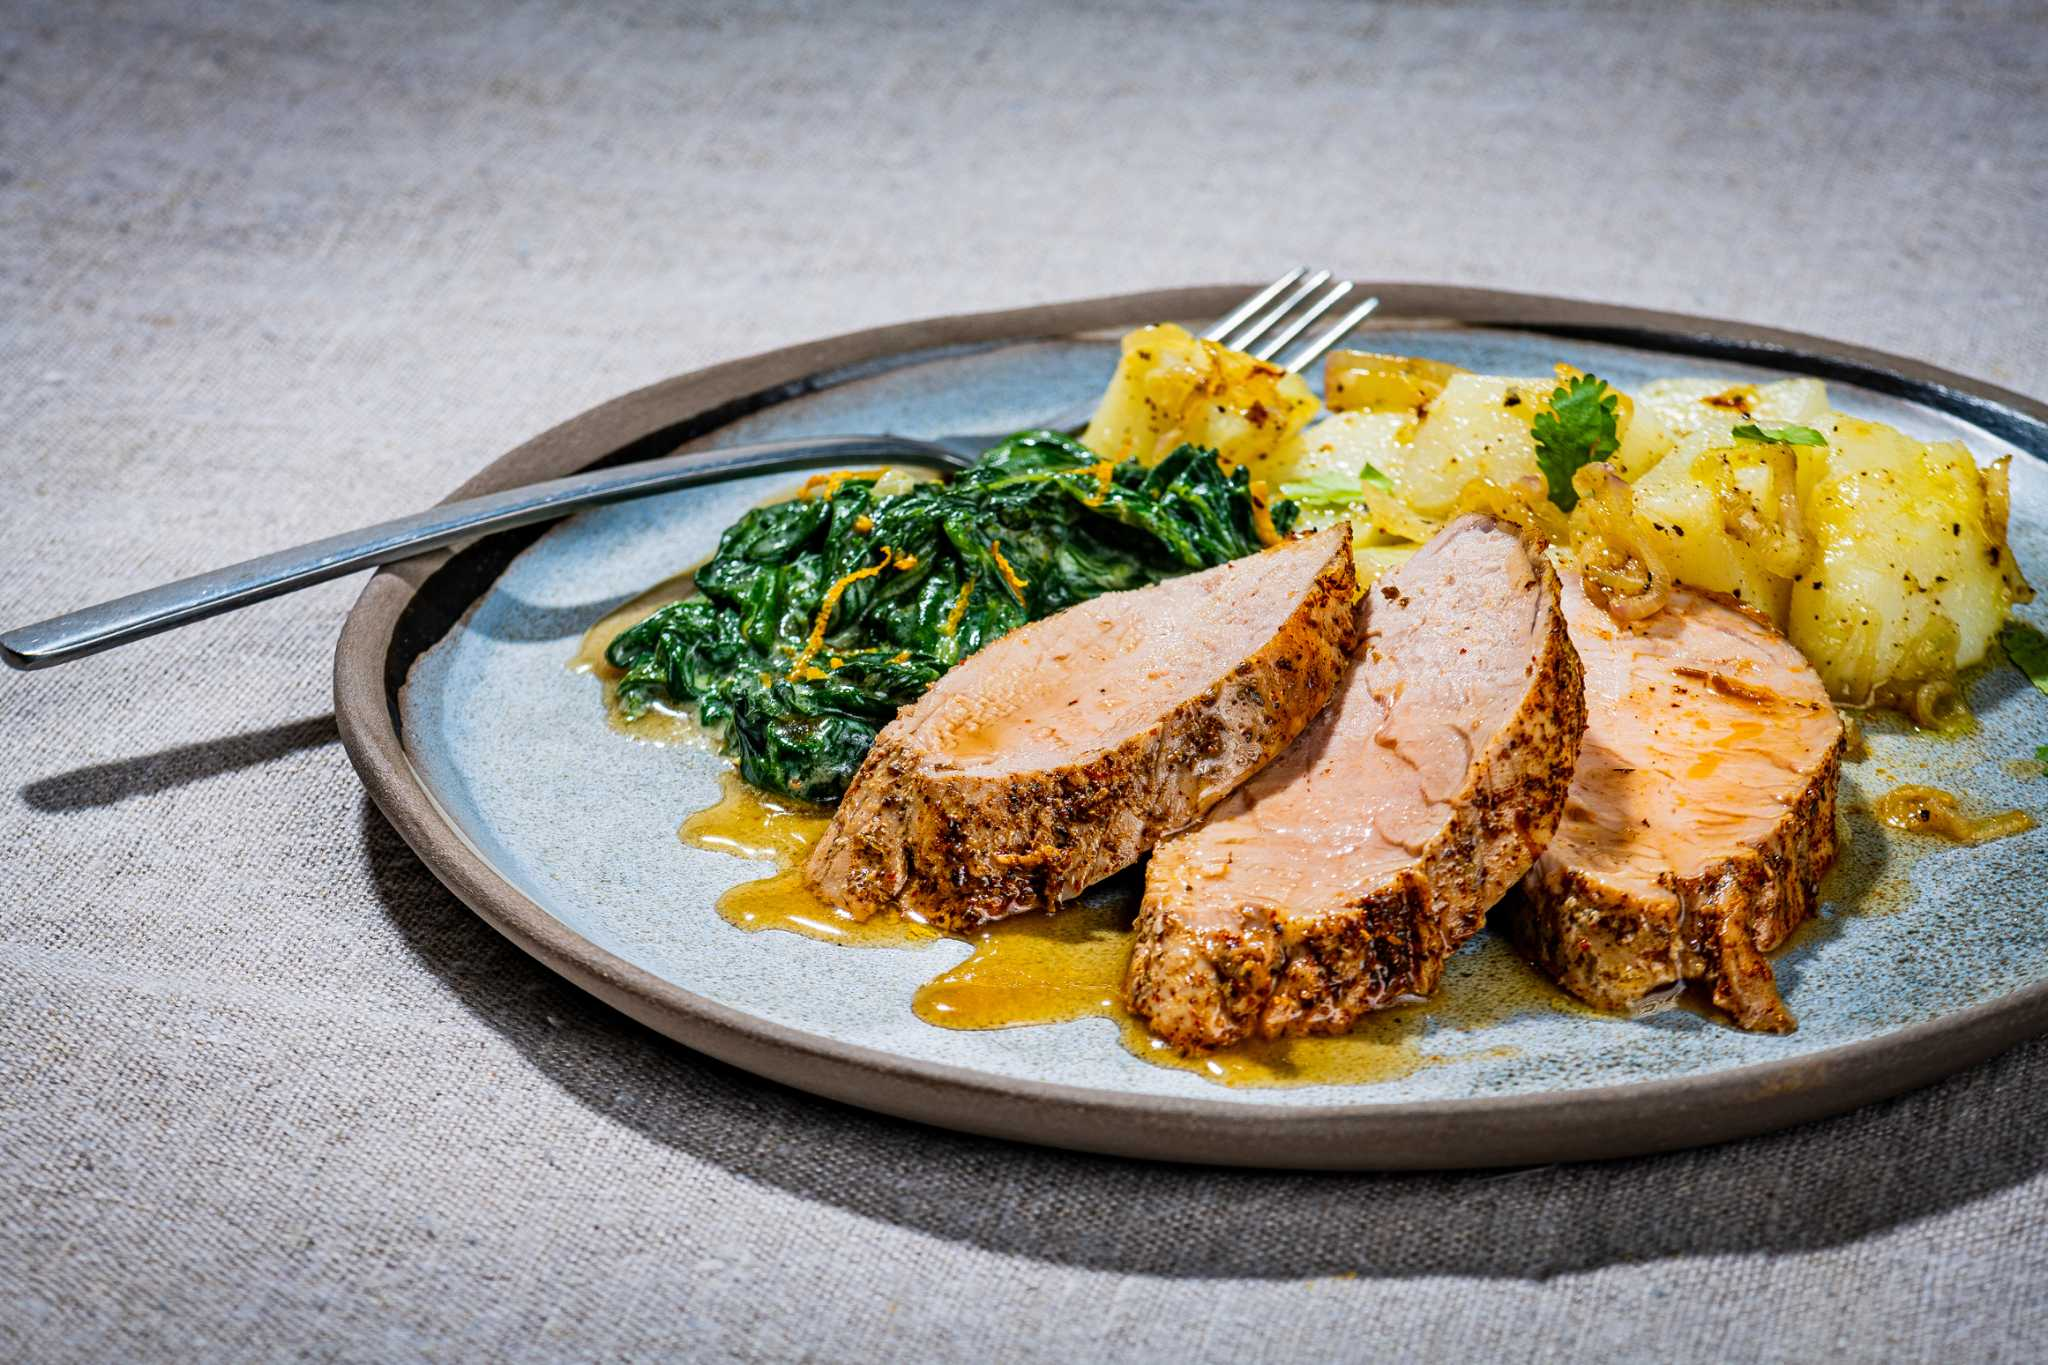 A pernil-style pork tenderloin that conjures the smells of a Puerto Rican kitchen